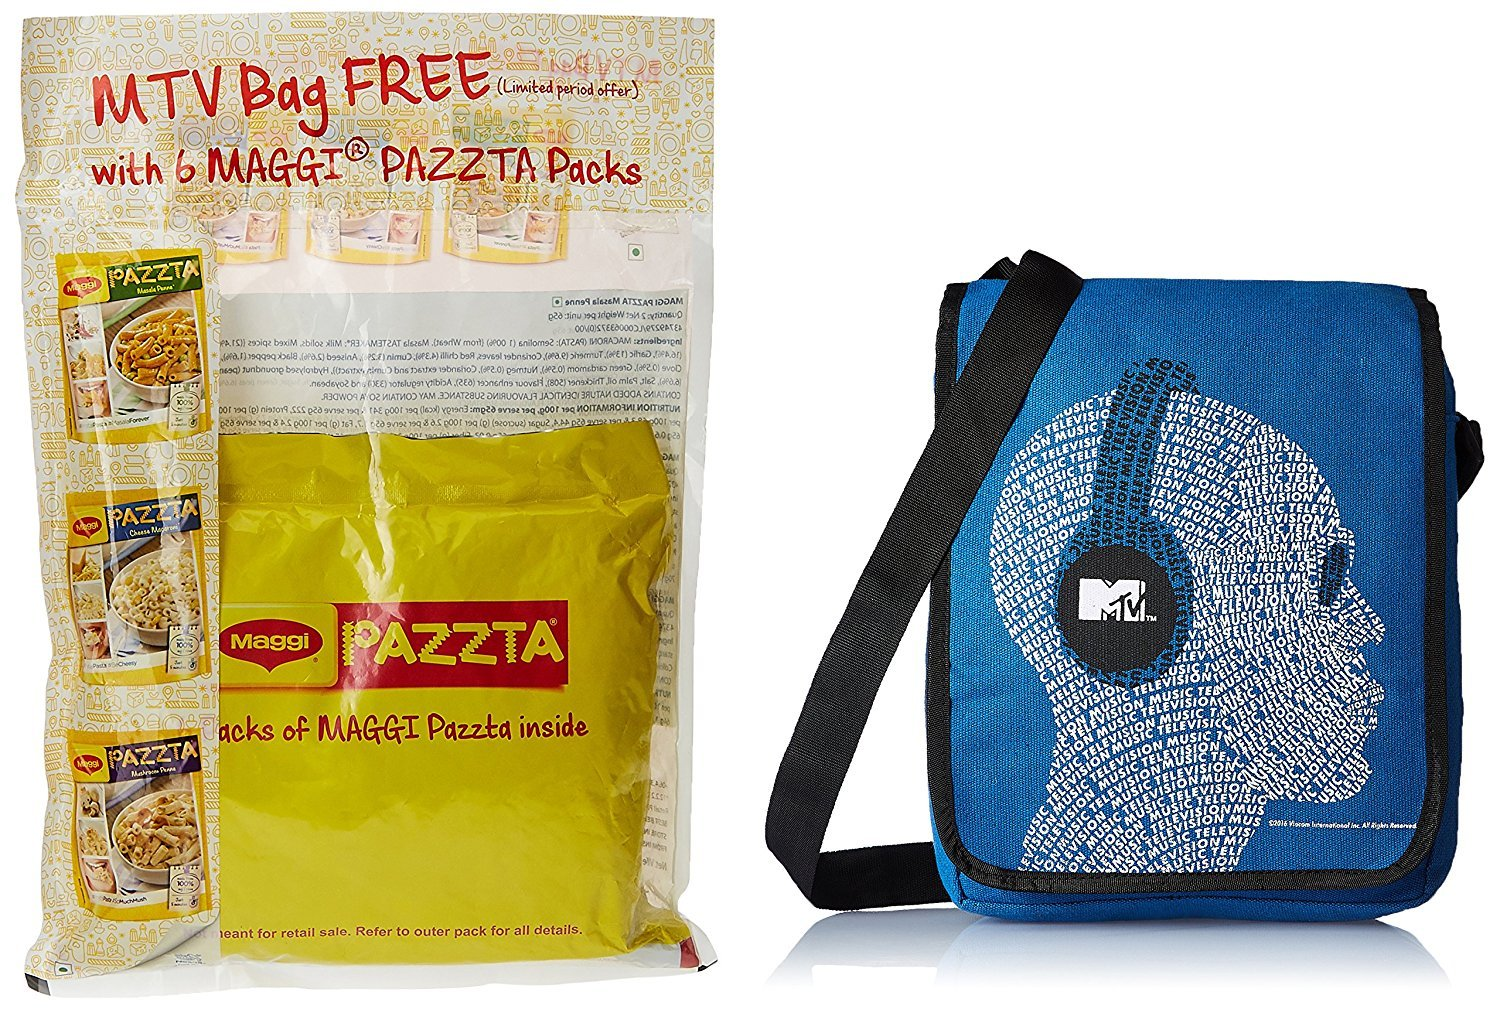 Free MTV Bag with Maggi Pazzta